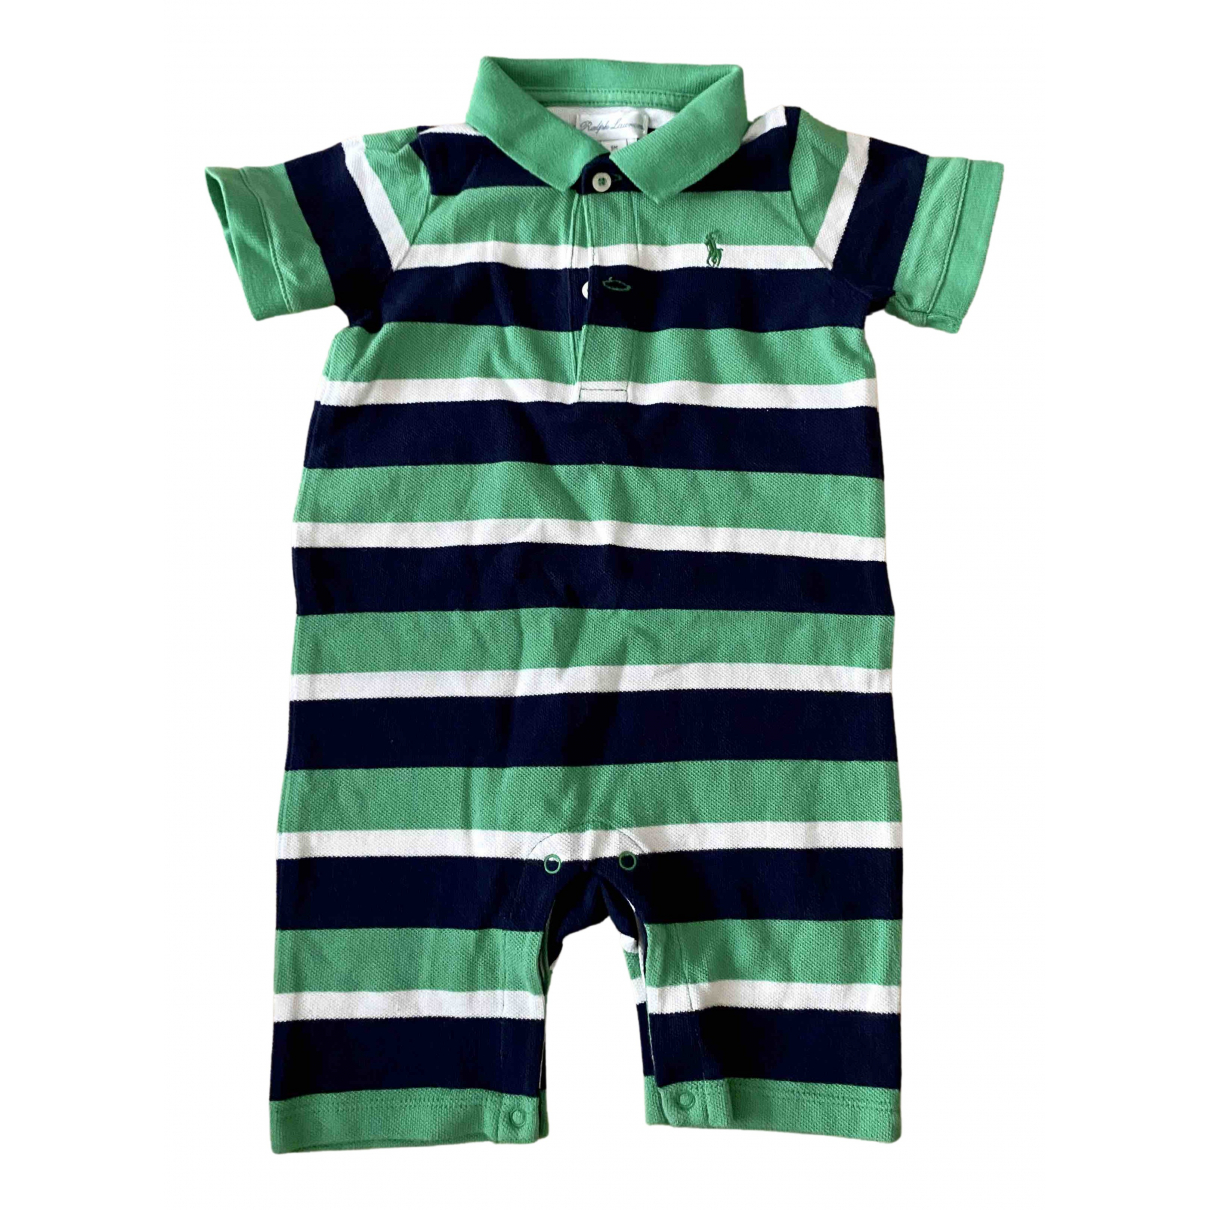 Ralph Lauren \N Multicolour Cotton Outfits for Kids 9 months - up to 71cm FR